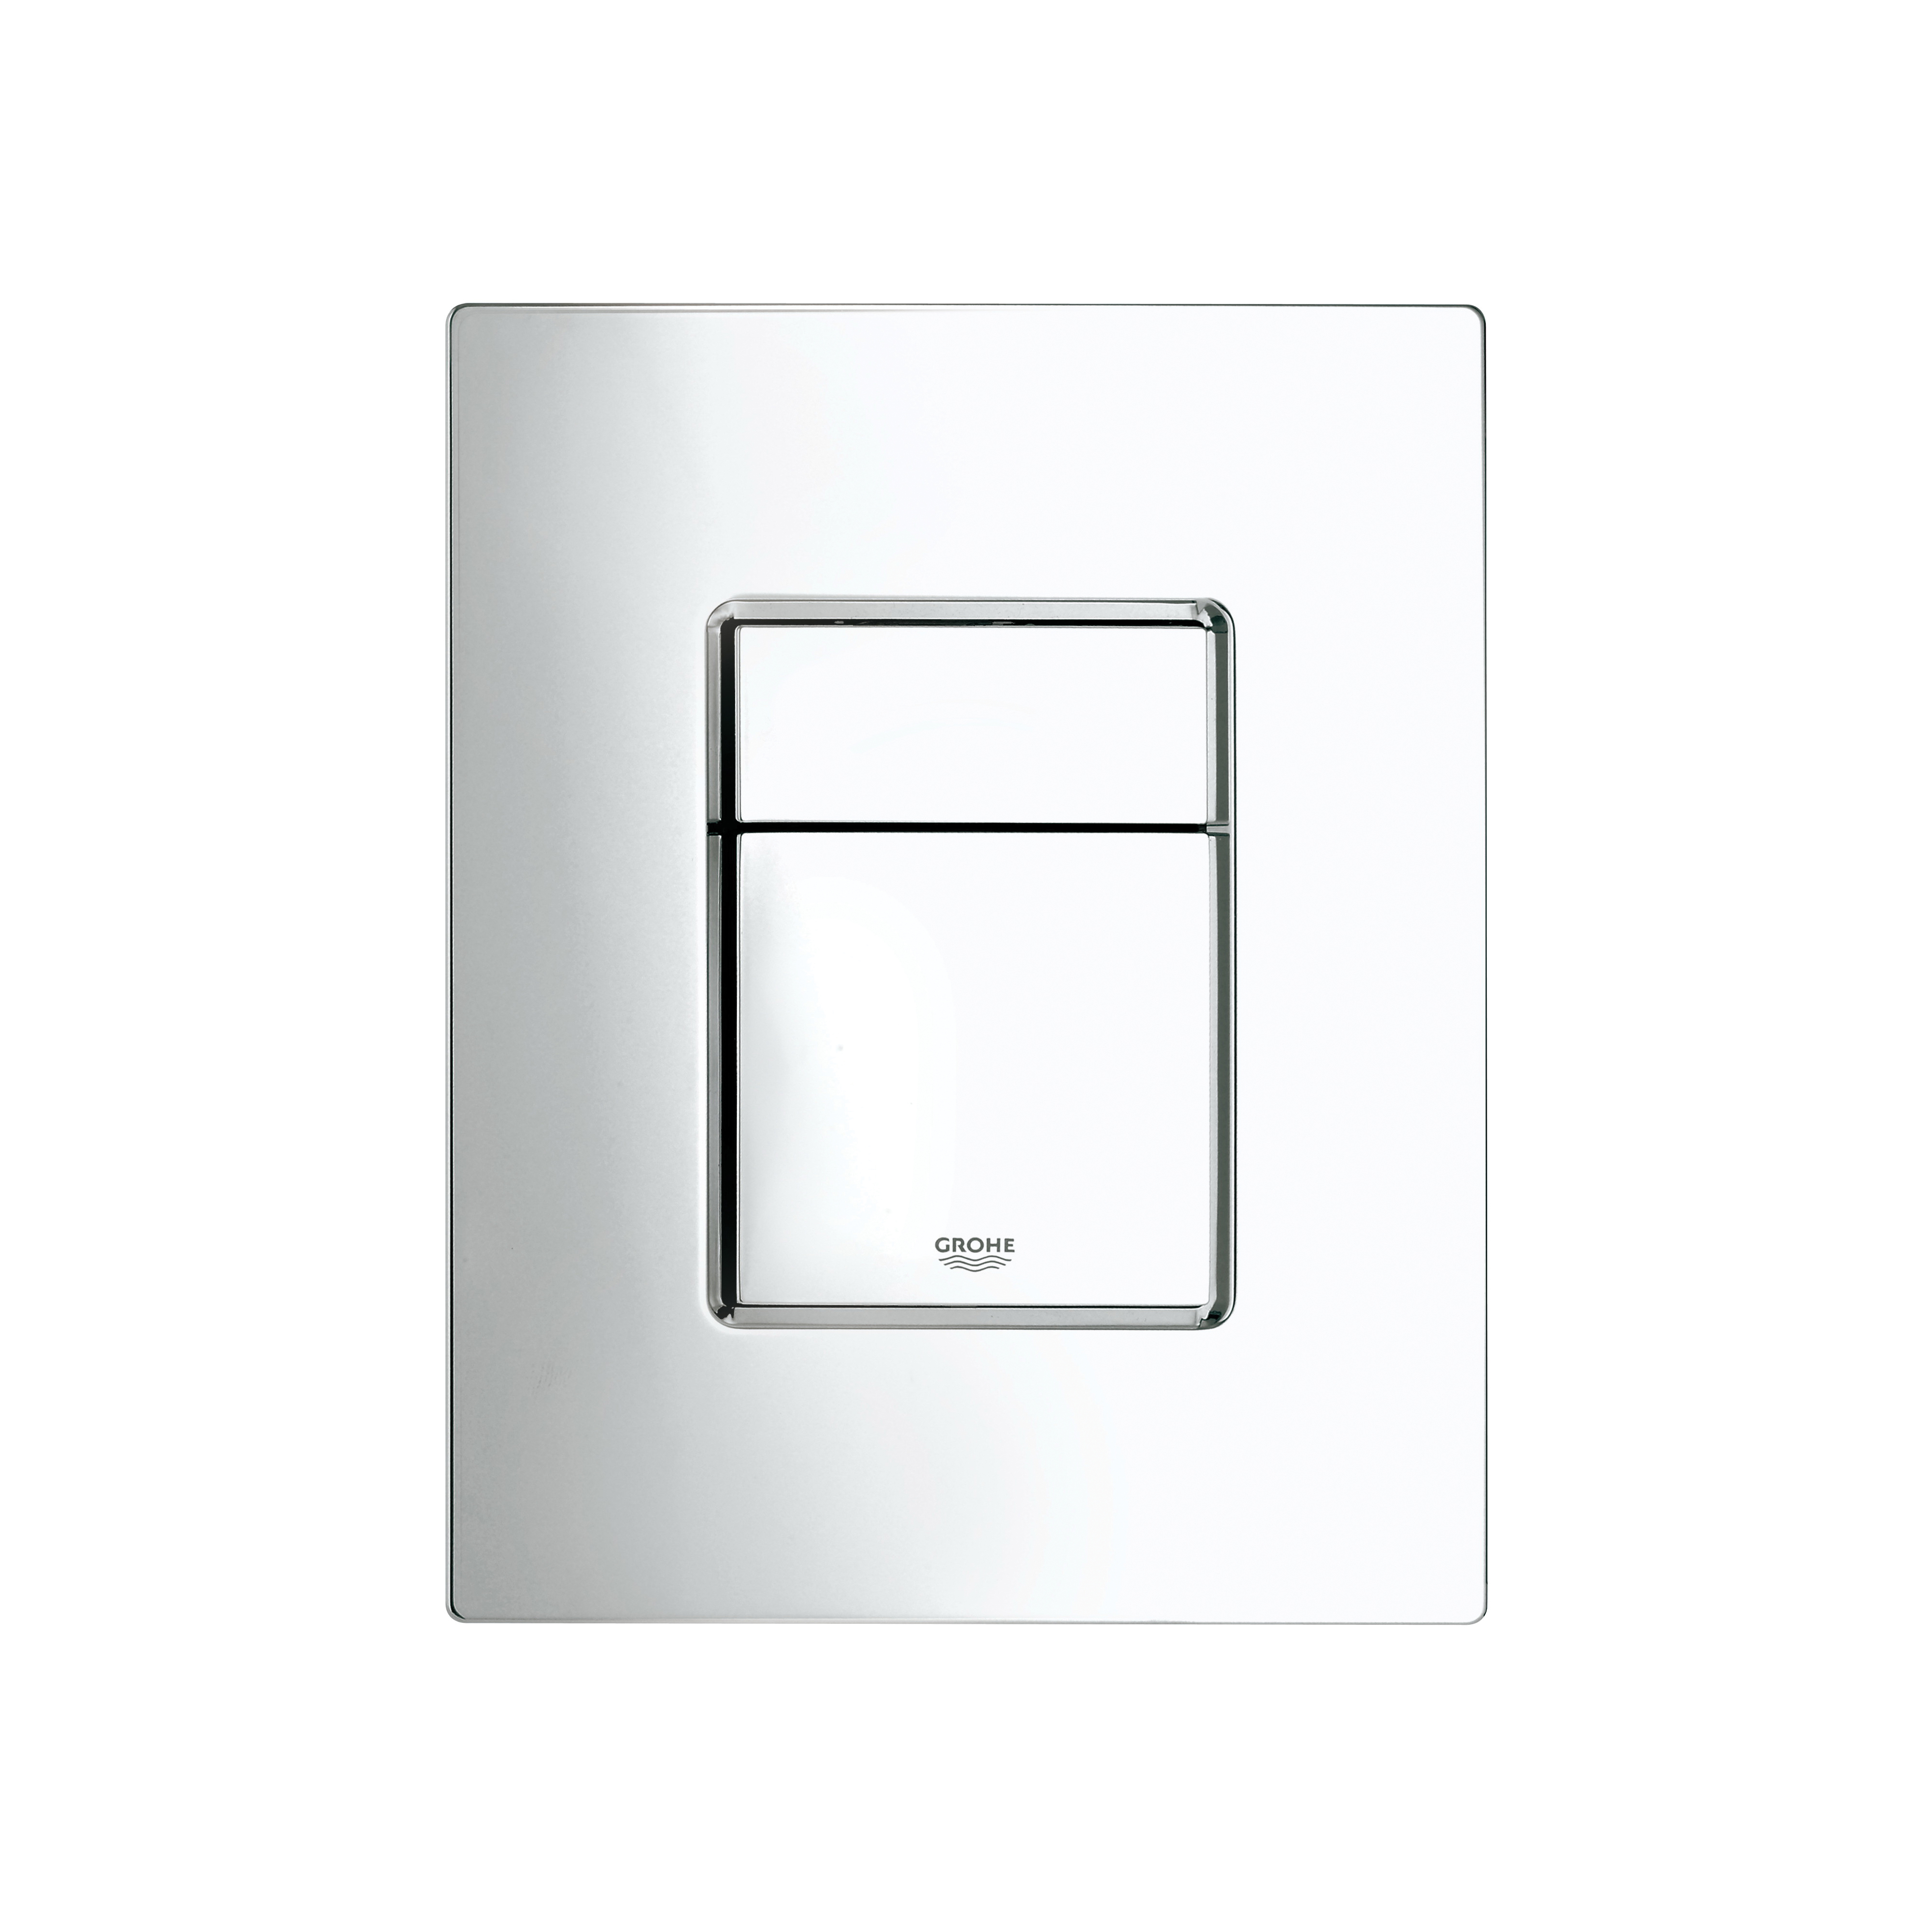 GROHE 38732000 Skate Cosmopolitan Wall Plate, ABS, Chrome Plated, Import